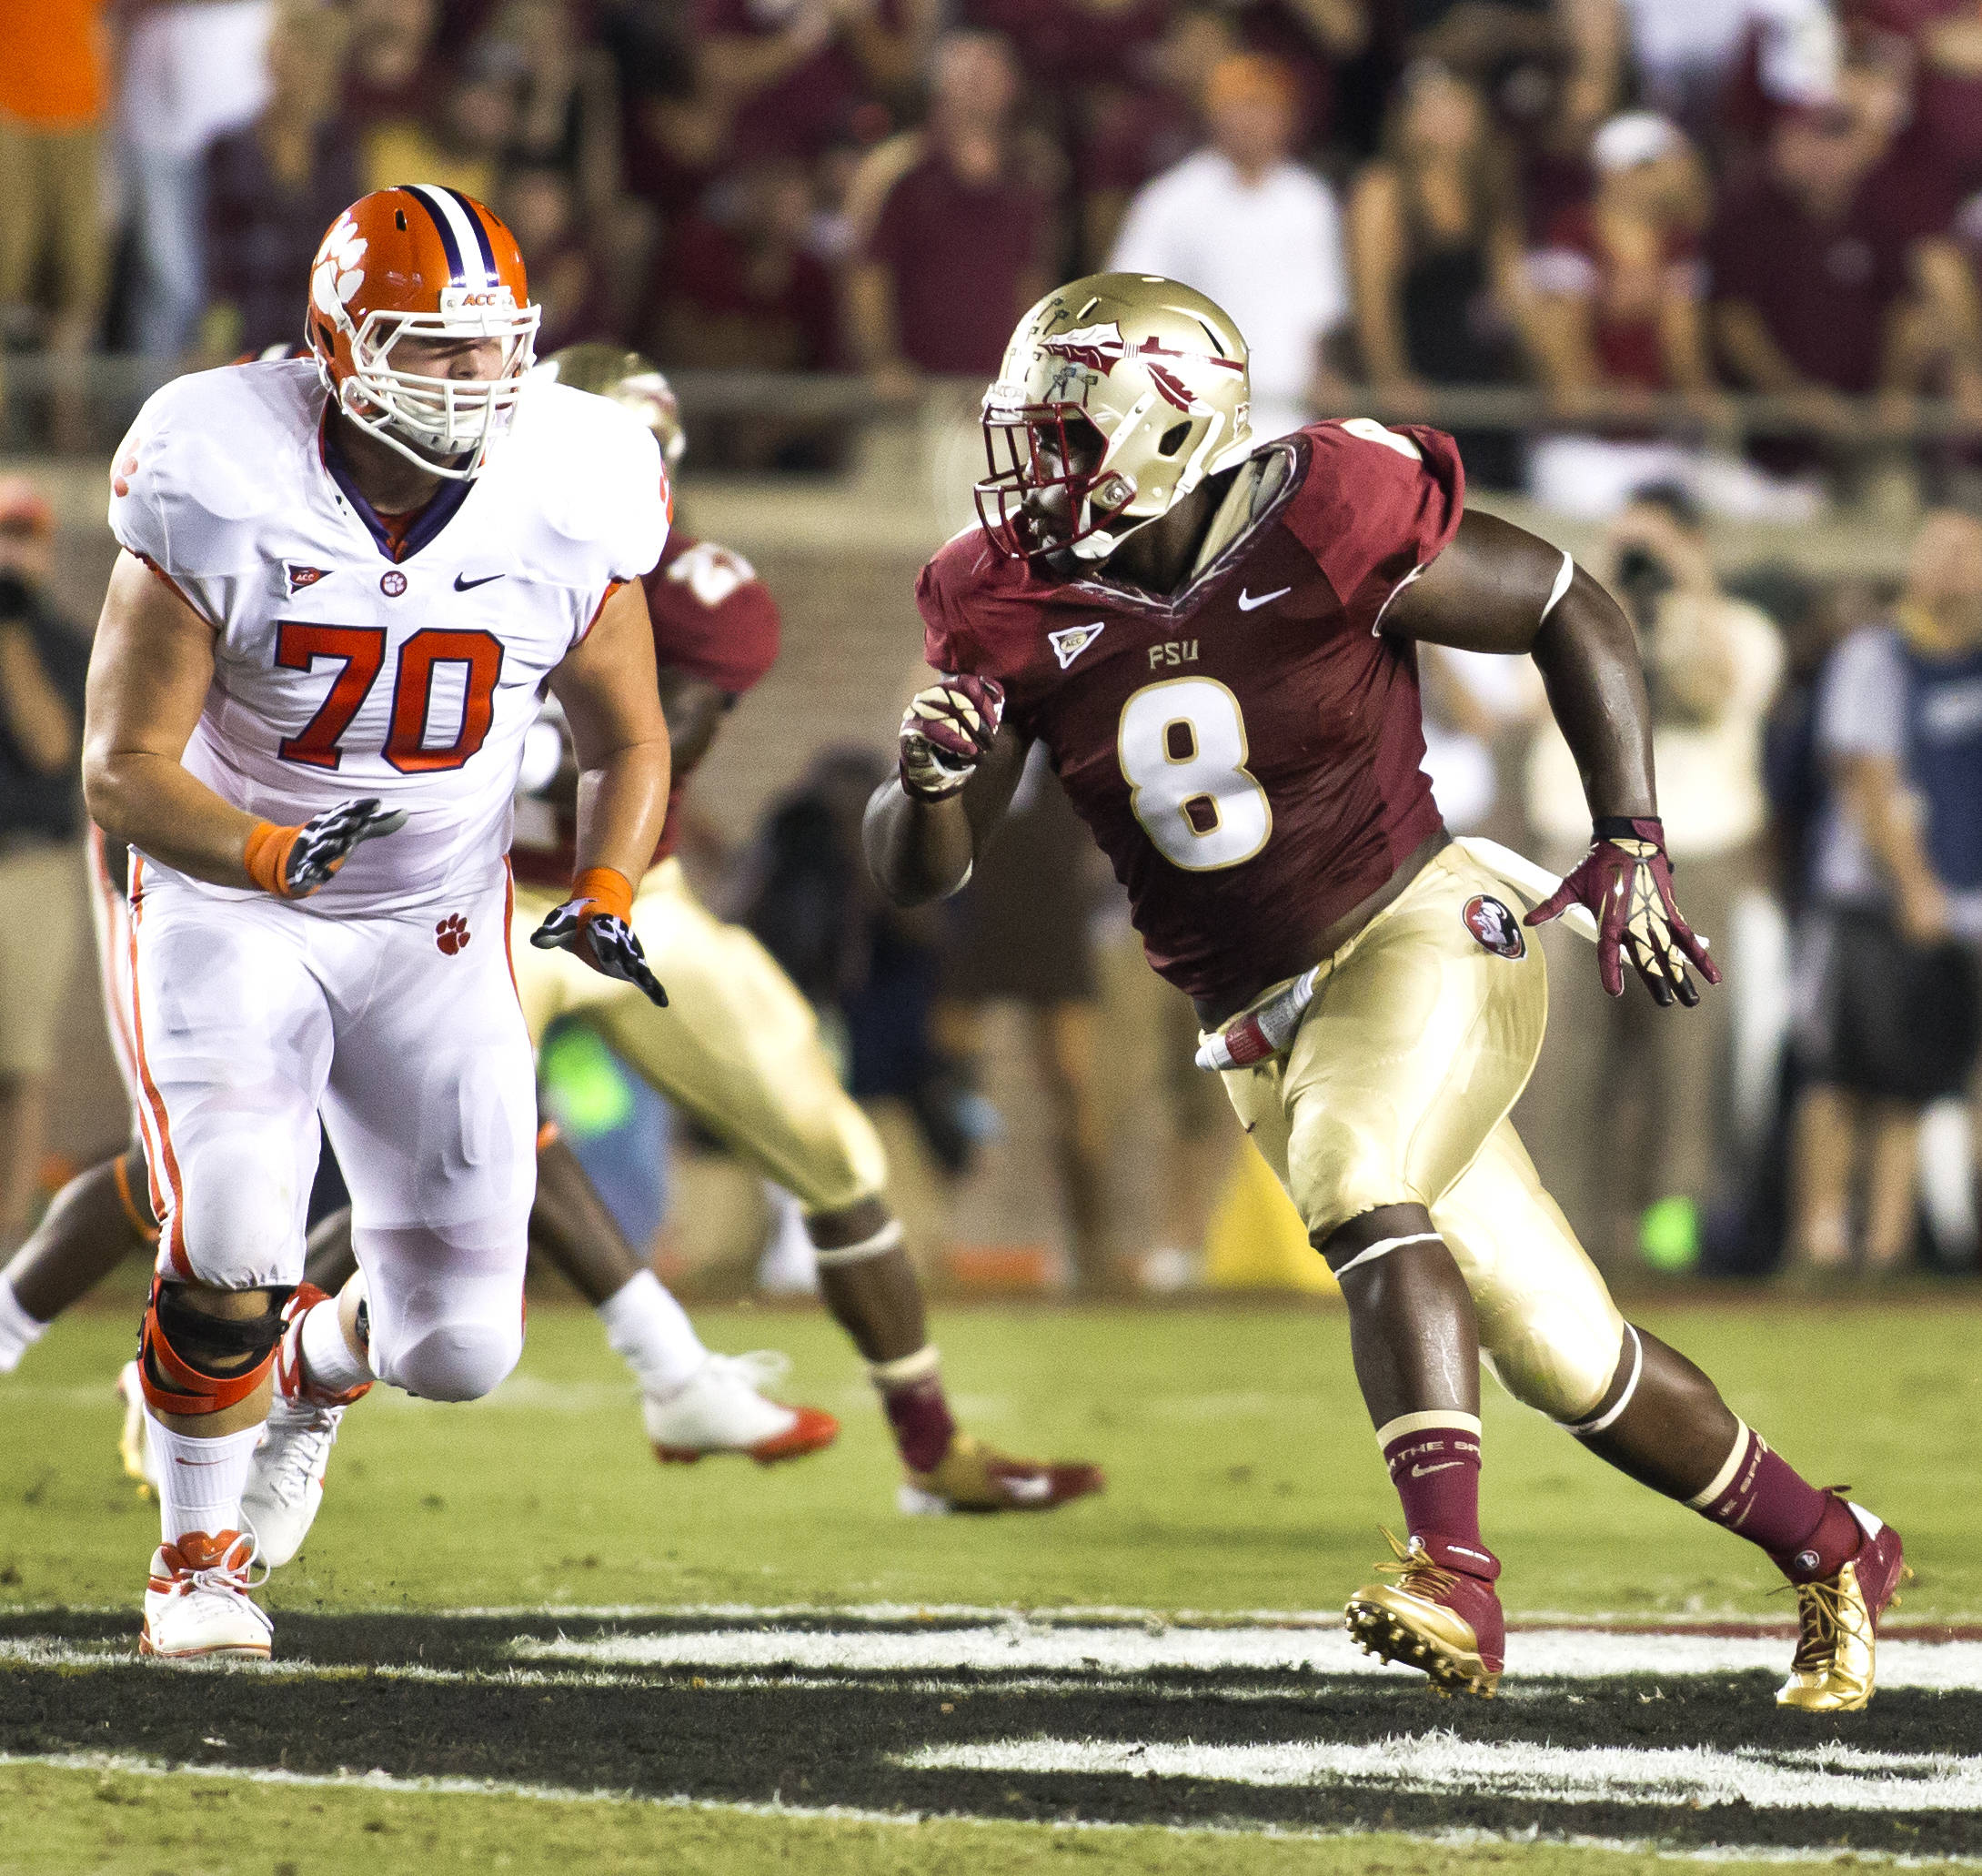 Timmy Jernigan (8) on a rush, FSU vs Clemson, 9/22/12 (Photo by Steve Musco)